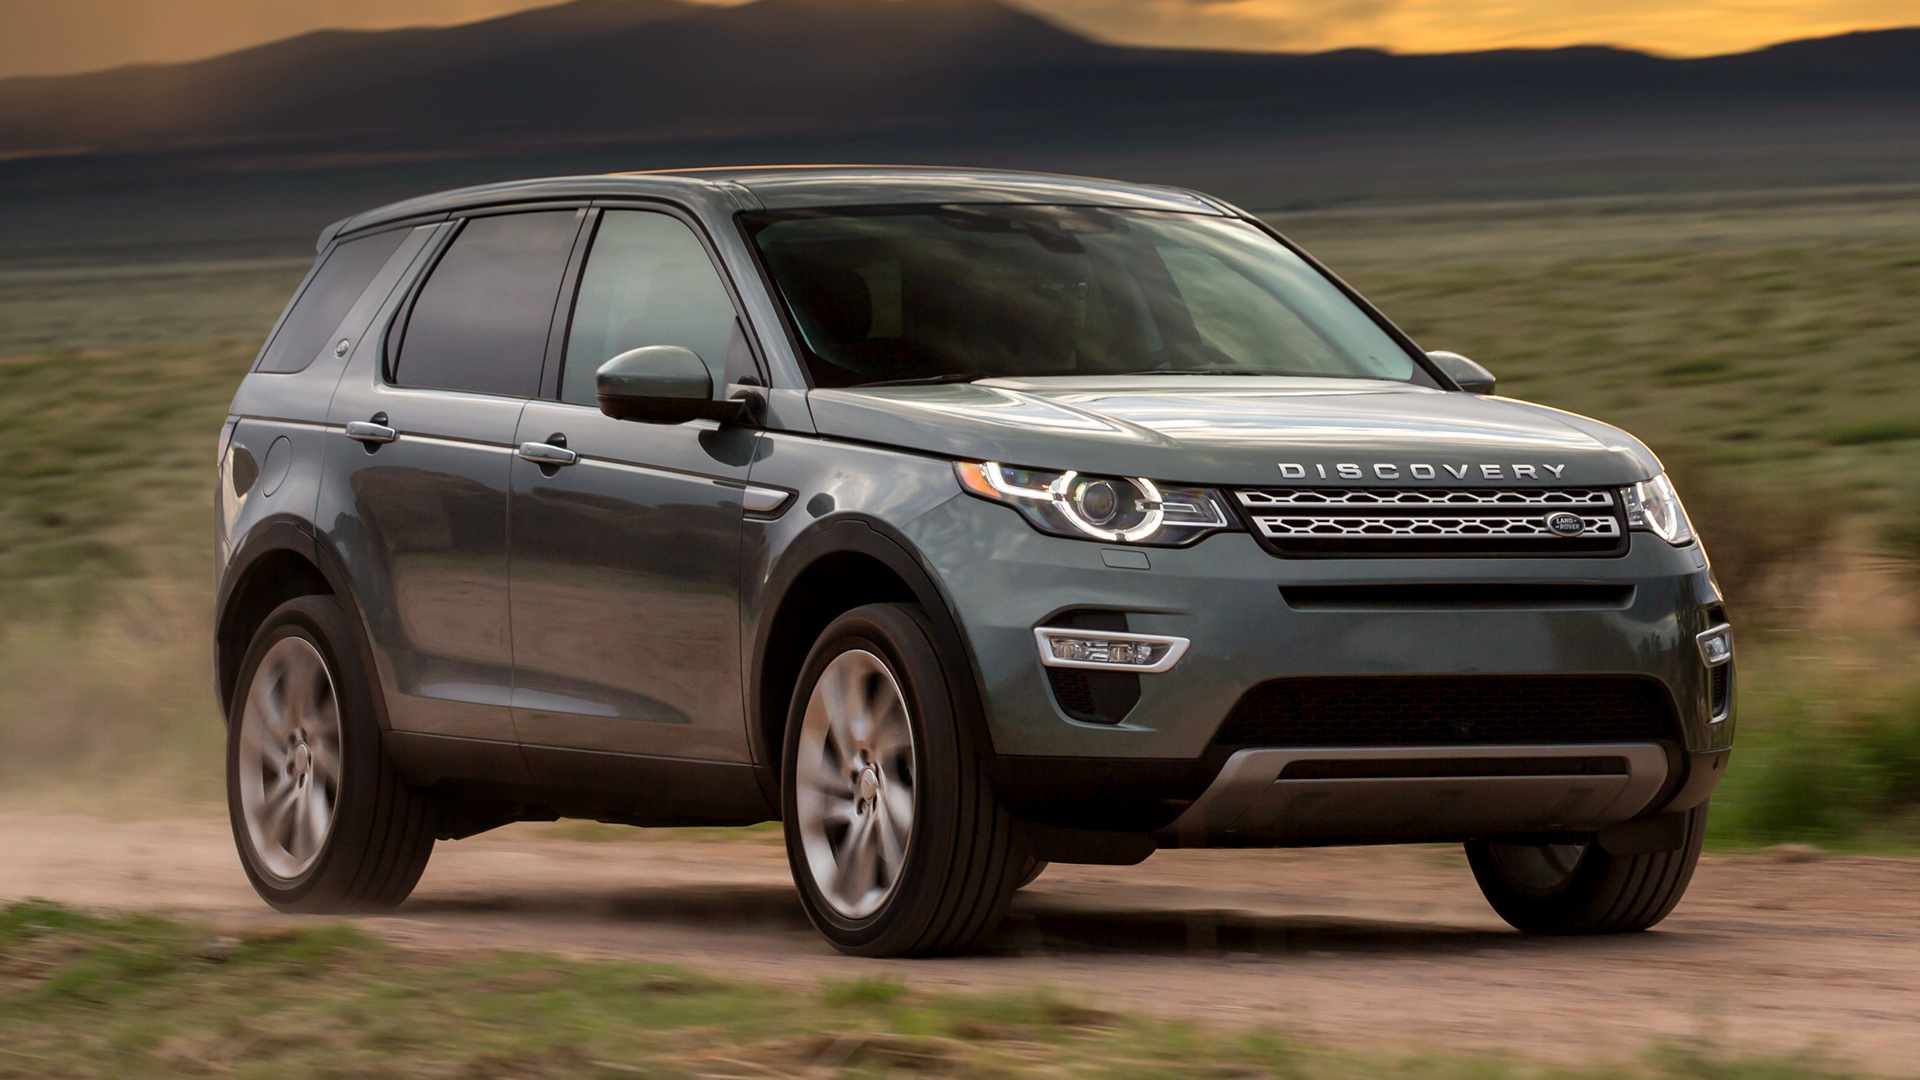 Wallpaper Land Rover Discovery Sport: Special Land Rover Discovery Sport Wallpaper